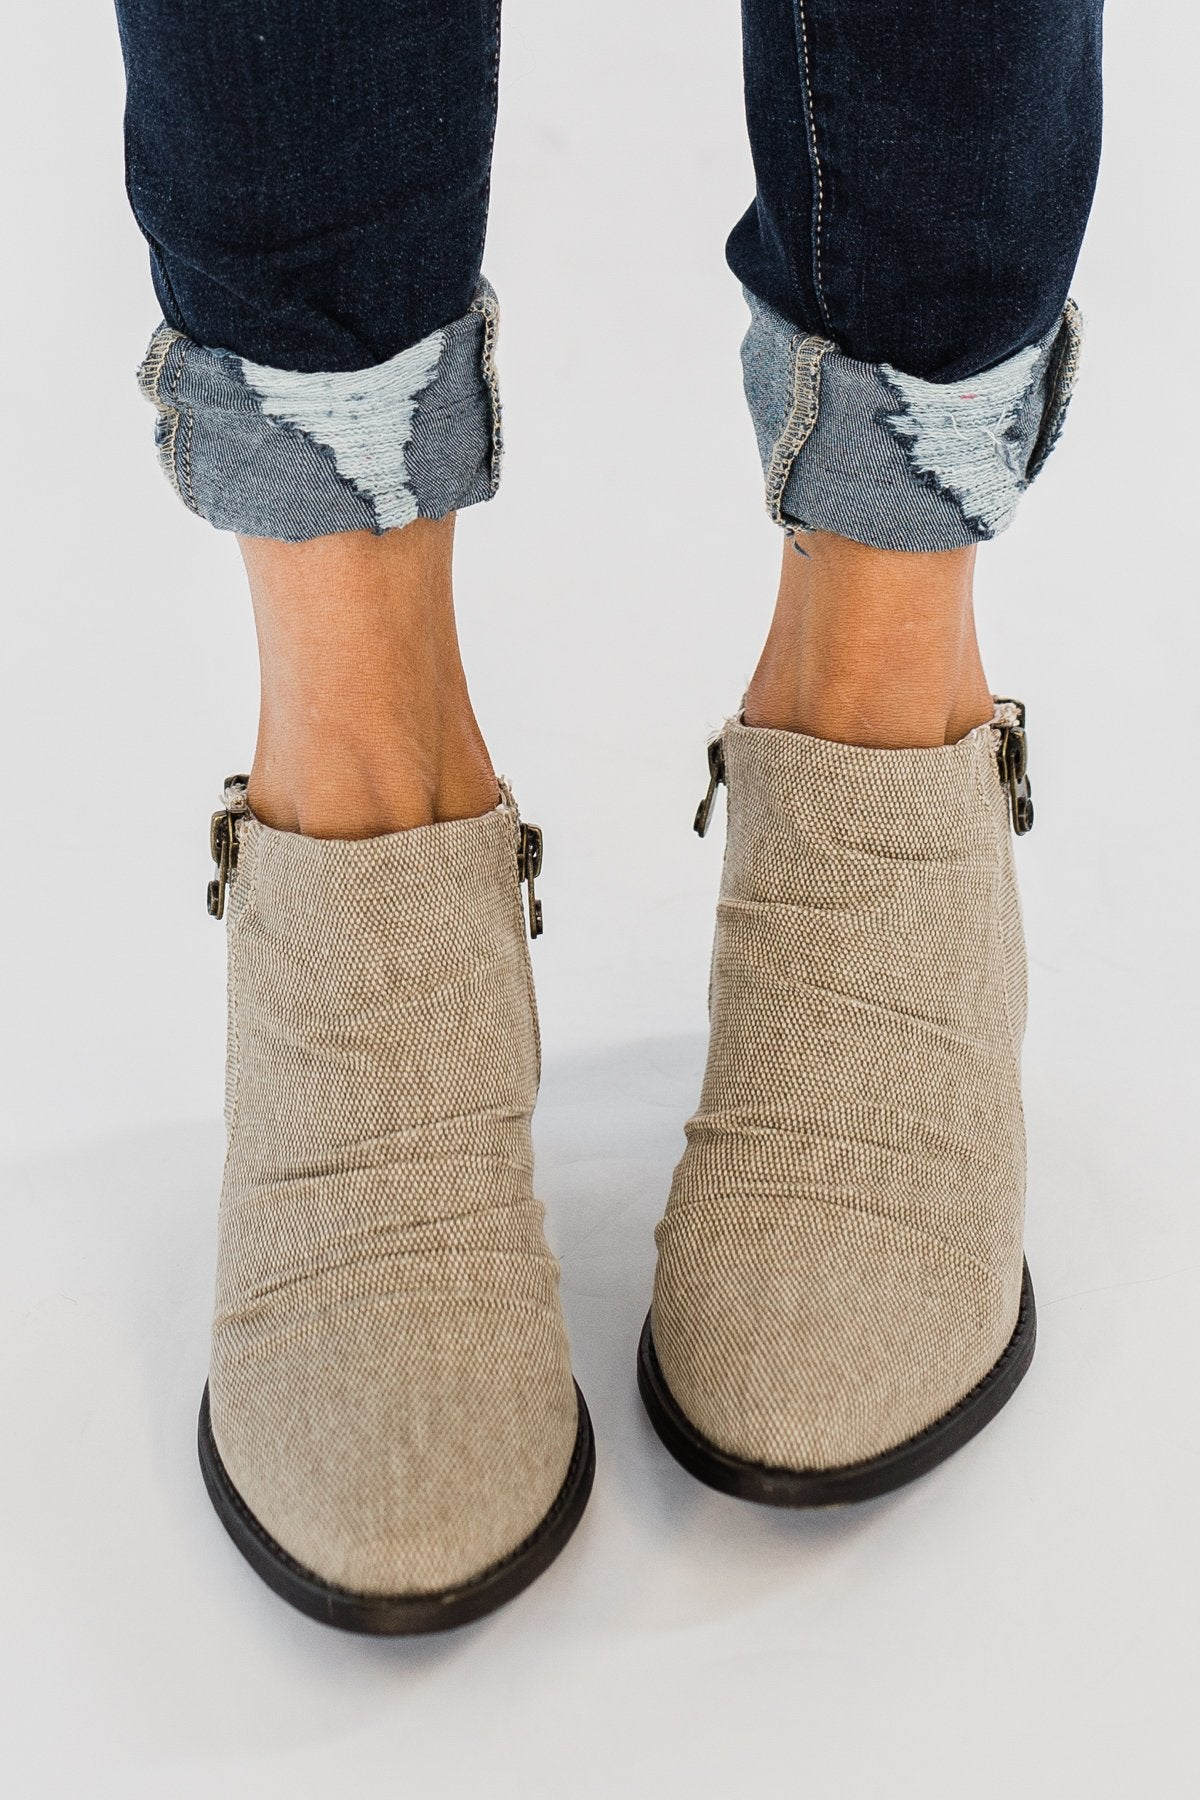 Blowfish Wander Booties- Light Taupe